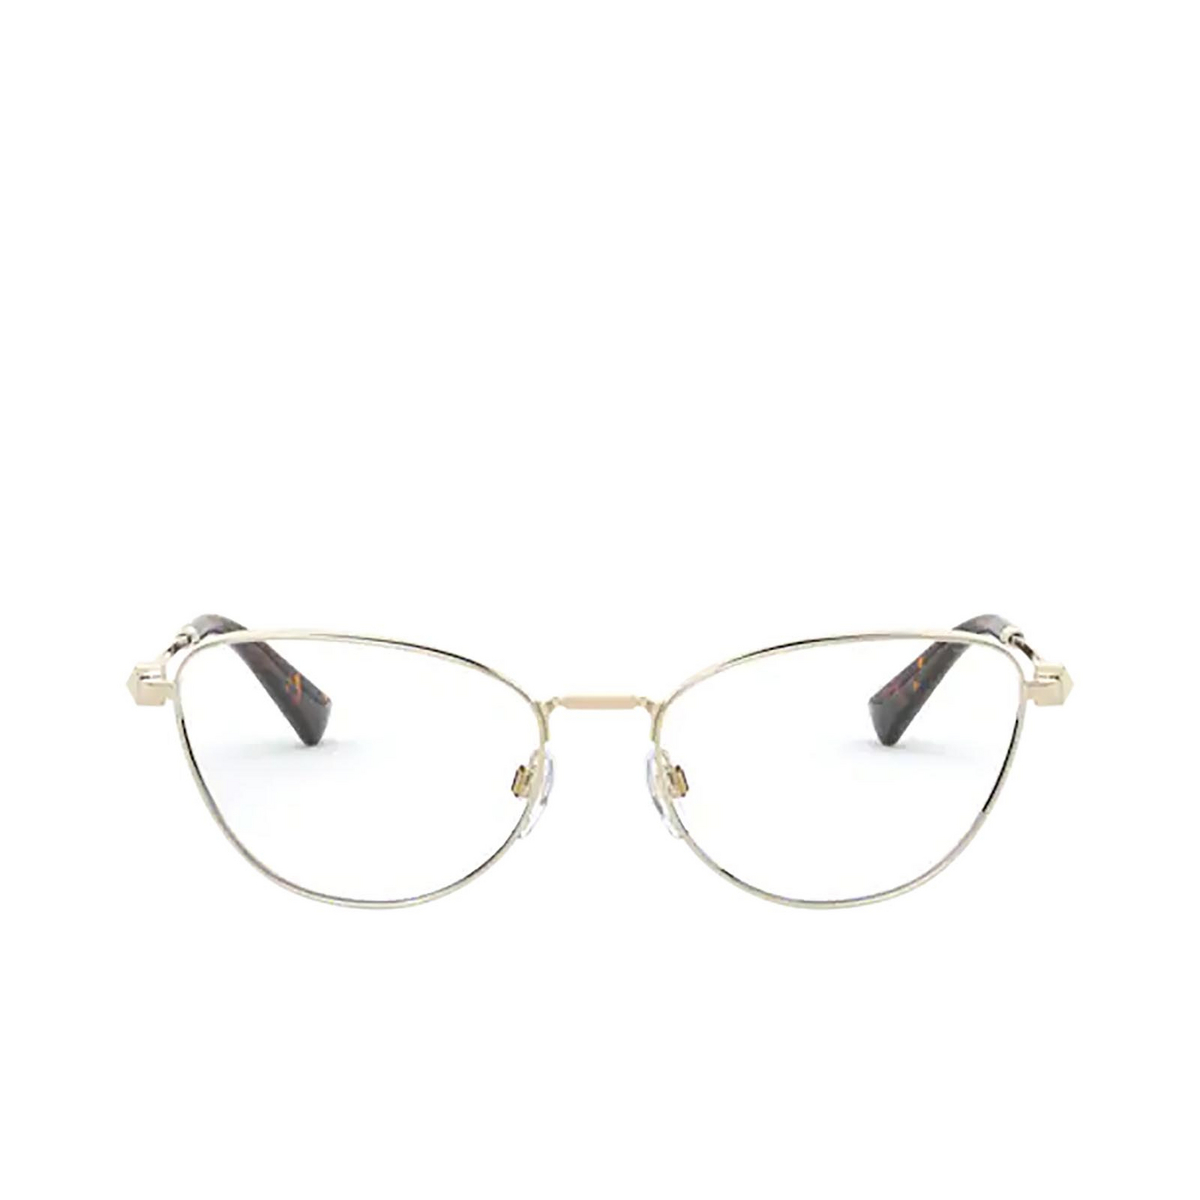 Valentino® Cat-eye Eyeglasses: VA1016 color Pale Gold 3003 - front view.